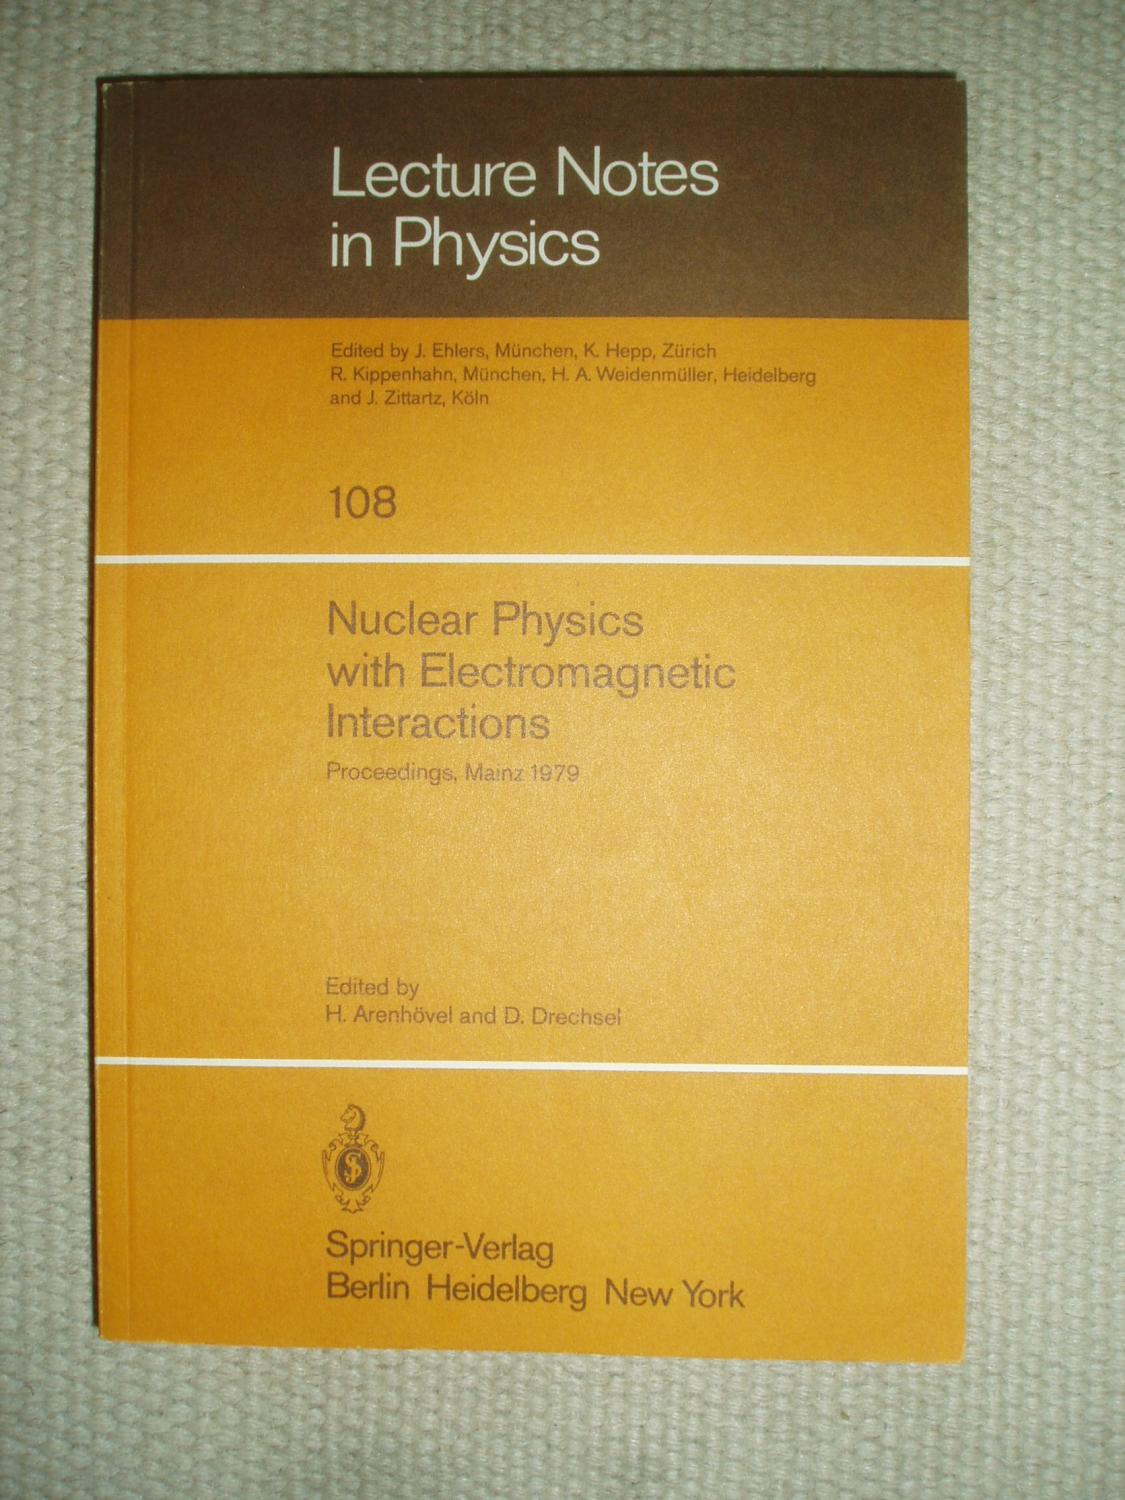 Nuclear Physics with Electromagnetic Interactions: Proceedings of the International Conference, Held in Mainz, Germany, June 5-9, 1979 (Lecture Notes in Physics)